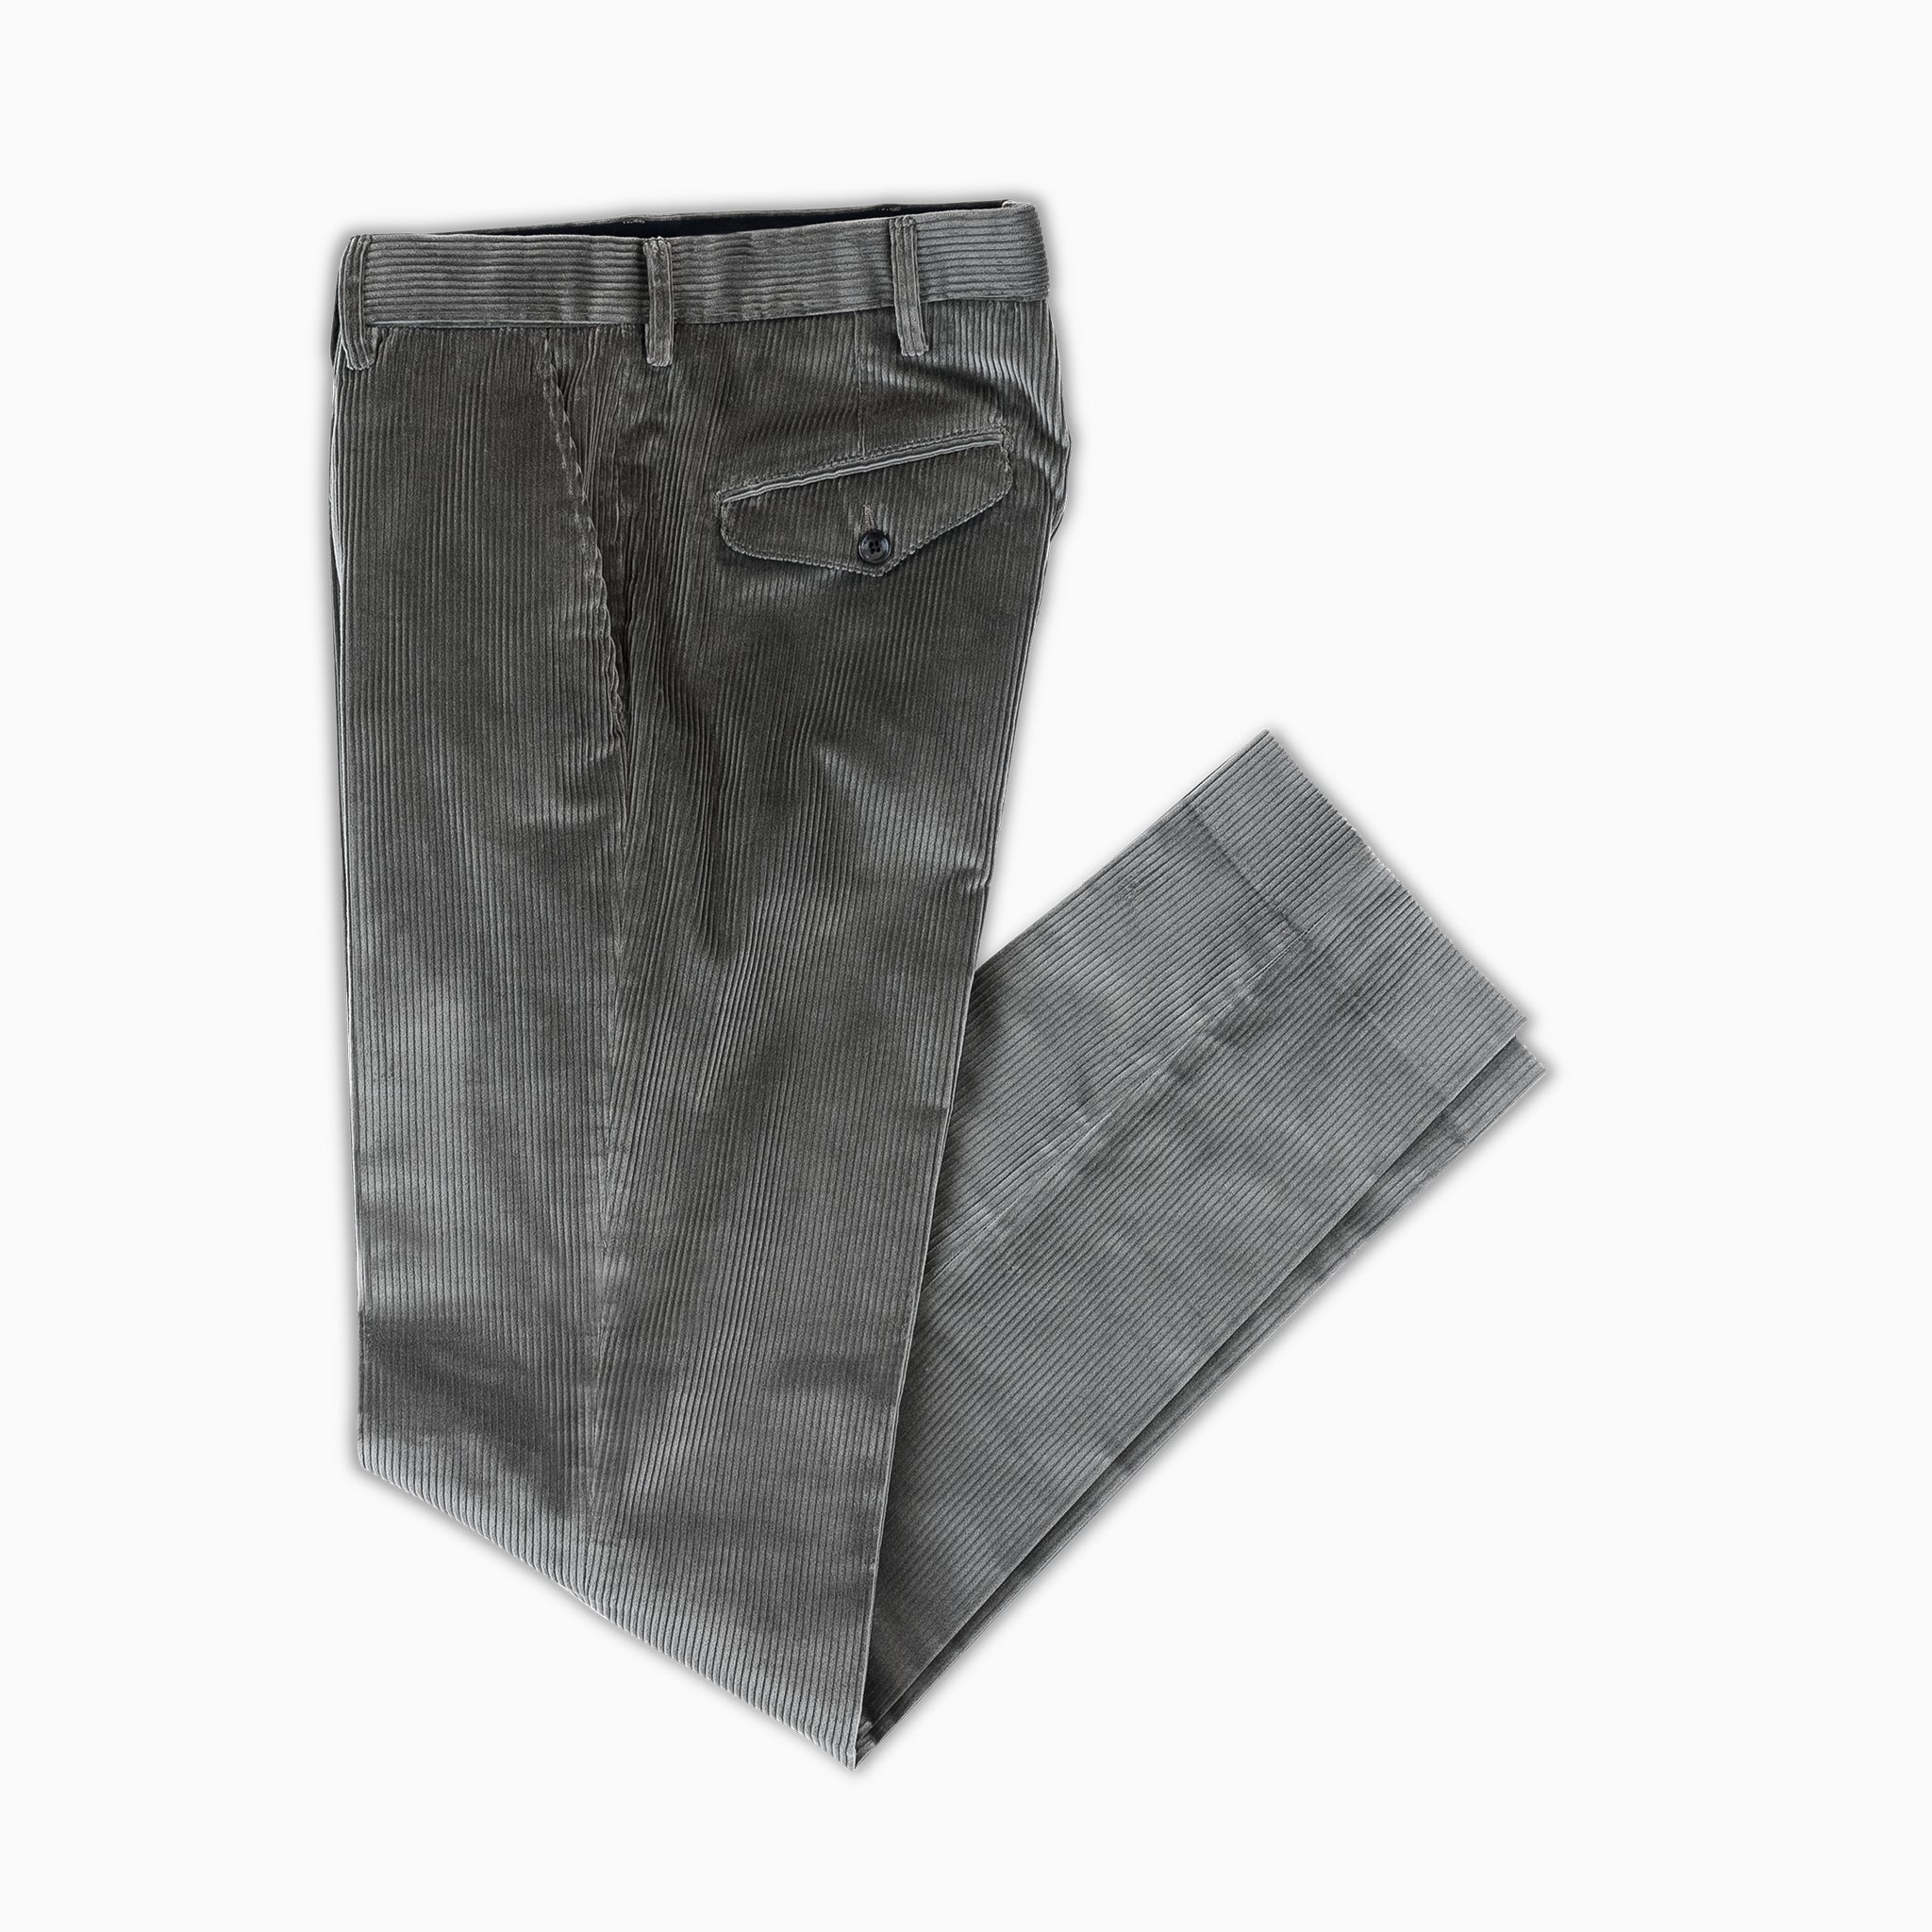 Boris Chino Pants Soft Cotton Corduroy (mud grey)